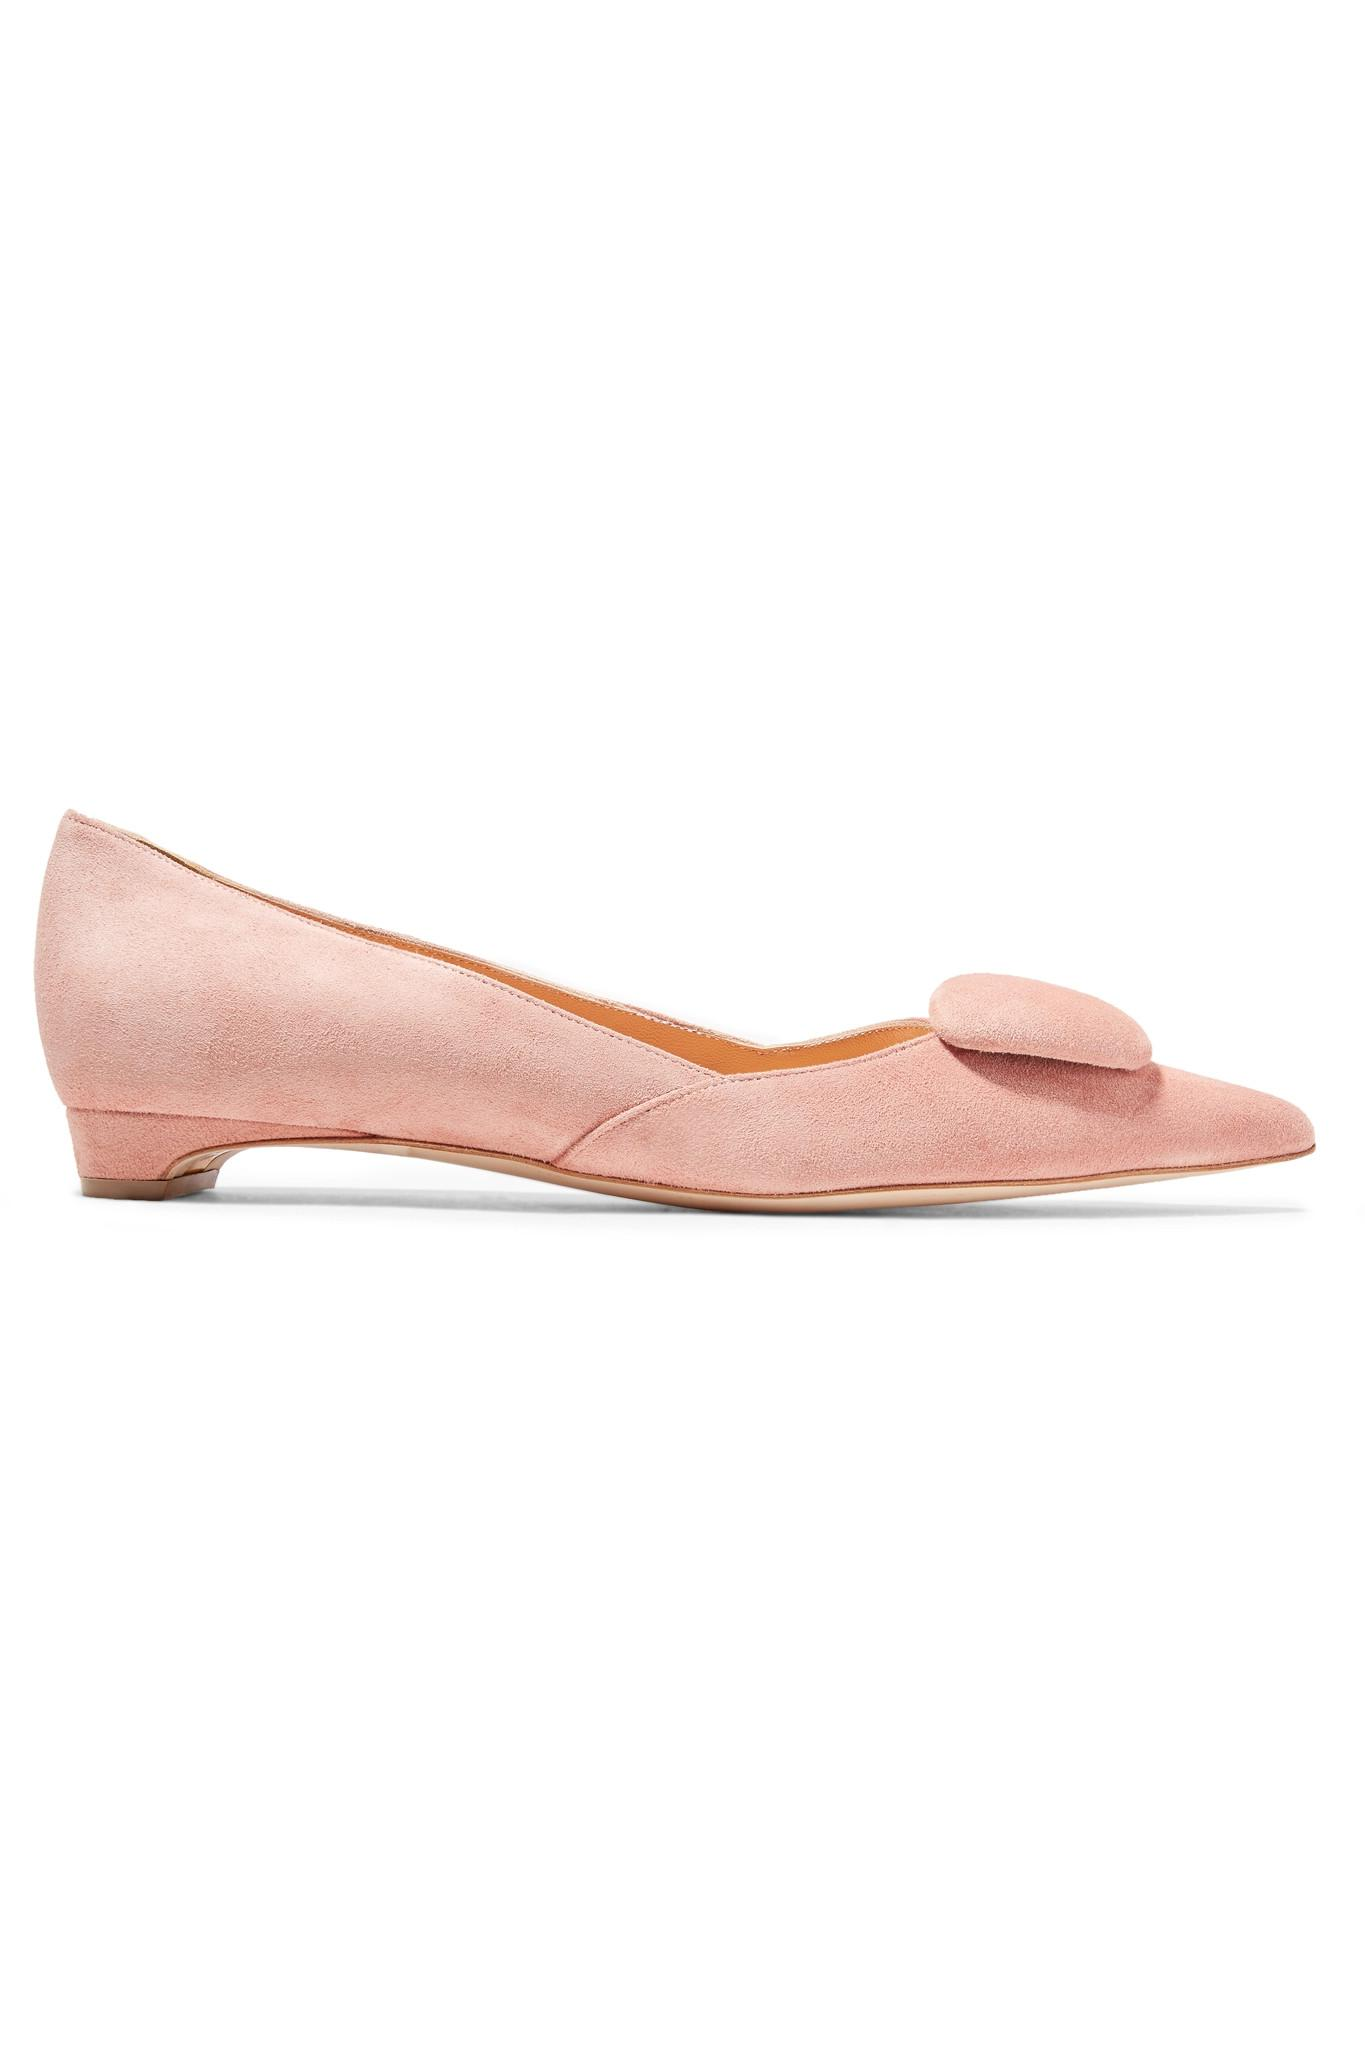 43aa60971d3 rupert-sanderson-antique-rose-Aga-Suede-Point-toe-Flats.jpeg